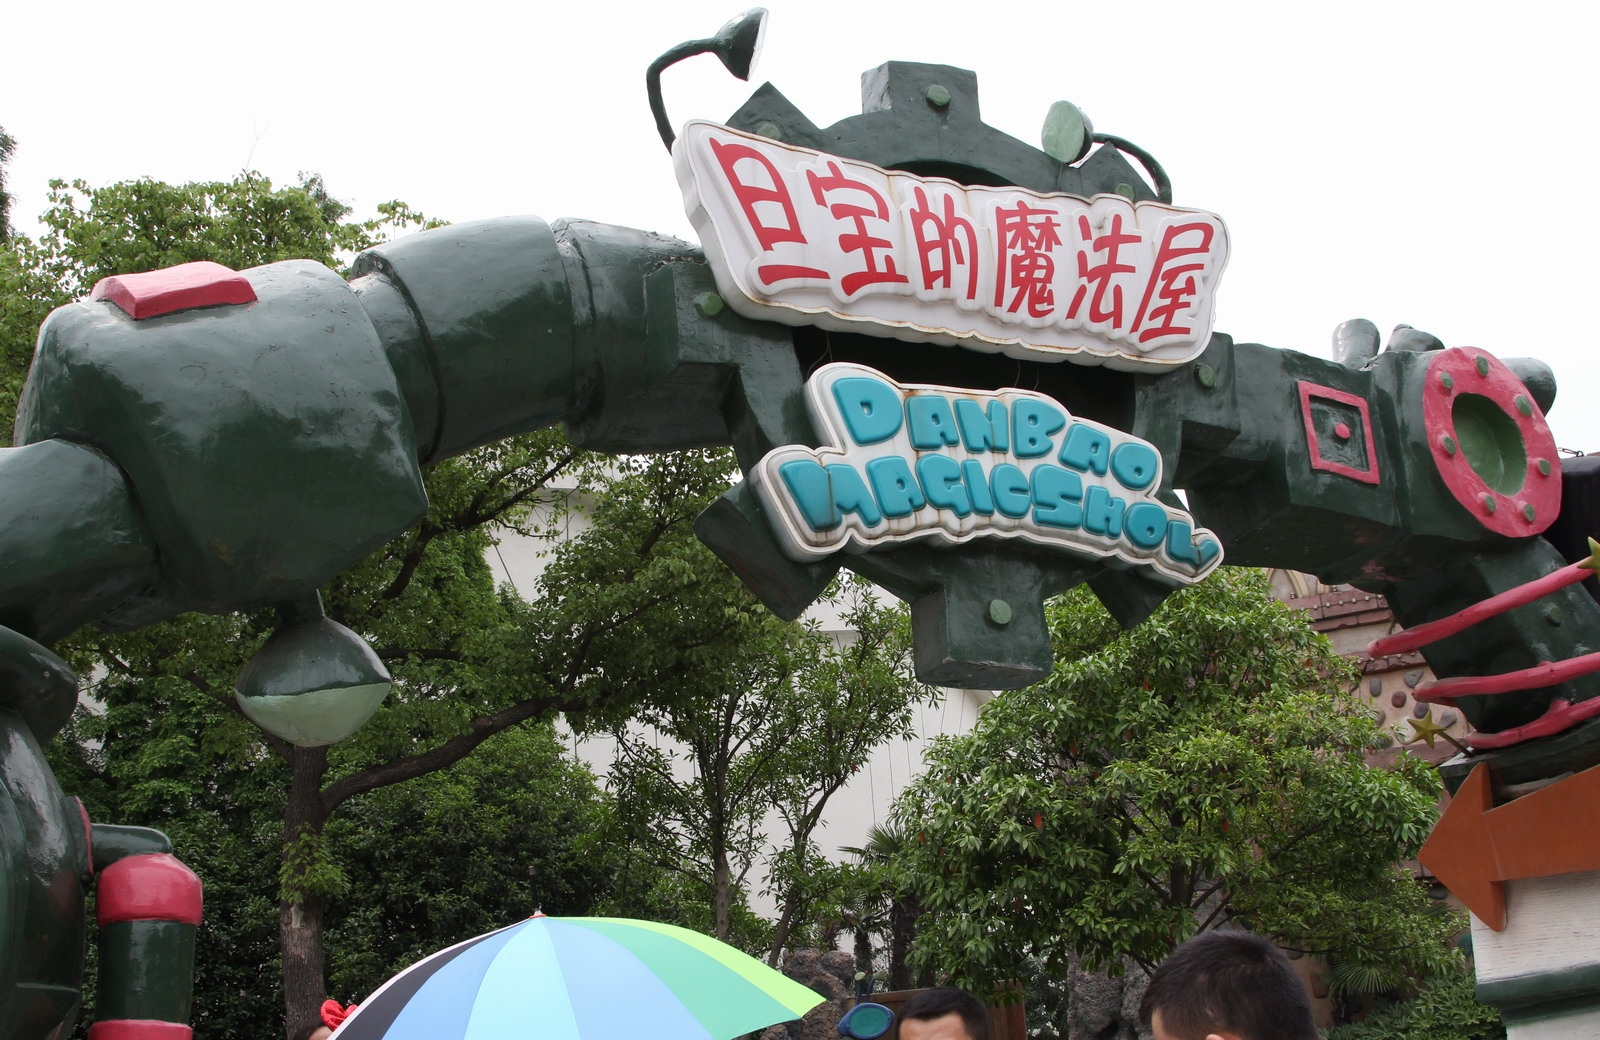 The magic house of Danbao in Changzhou dinosaur garden